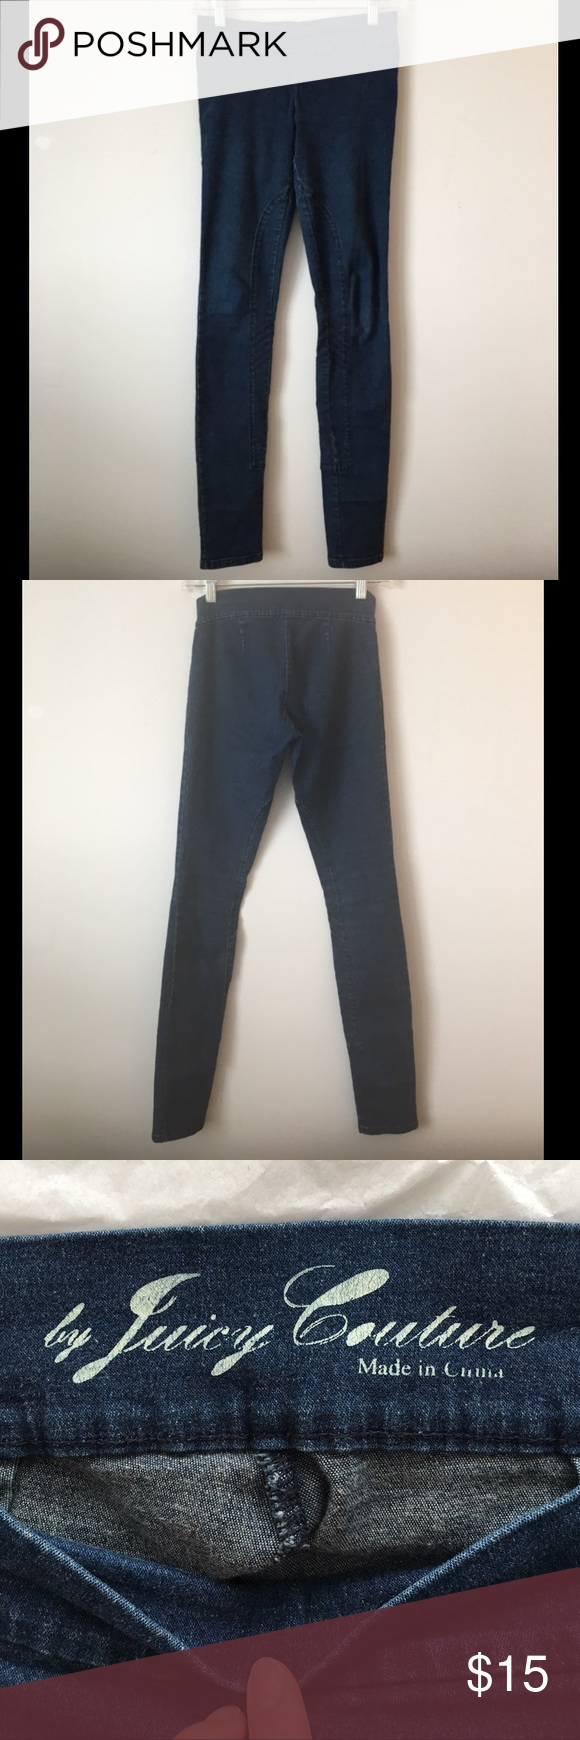 Juicy Couture Jeggings Denim jeggings in stretchy material so very comfortable. Worn but in good condition. Juicy Couture Jeans Skinny